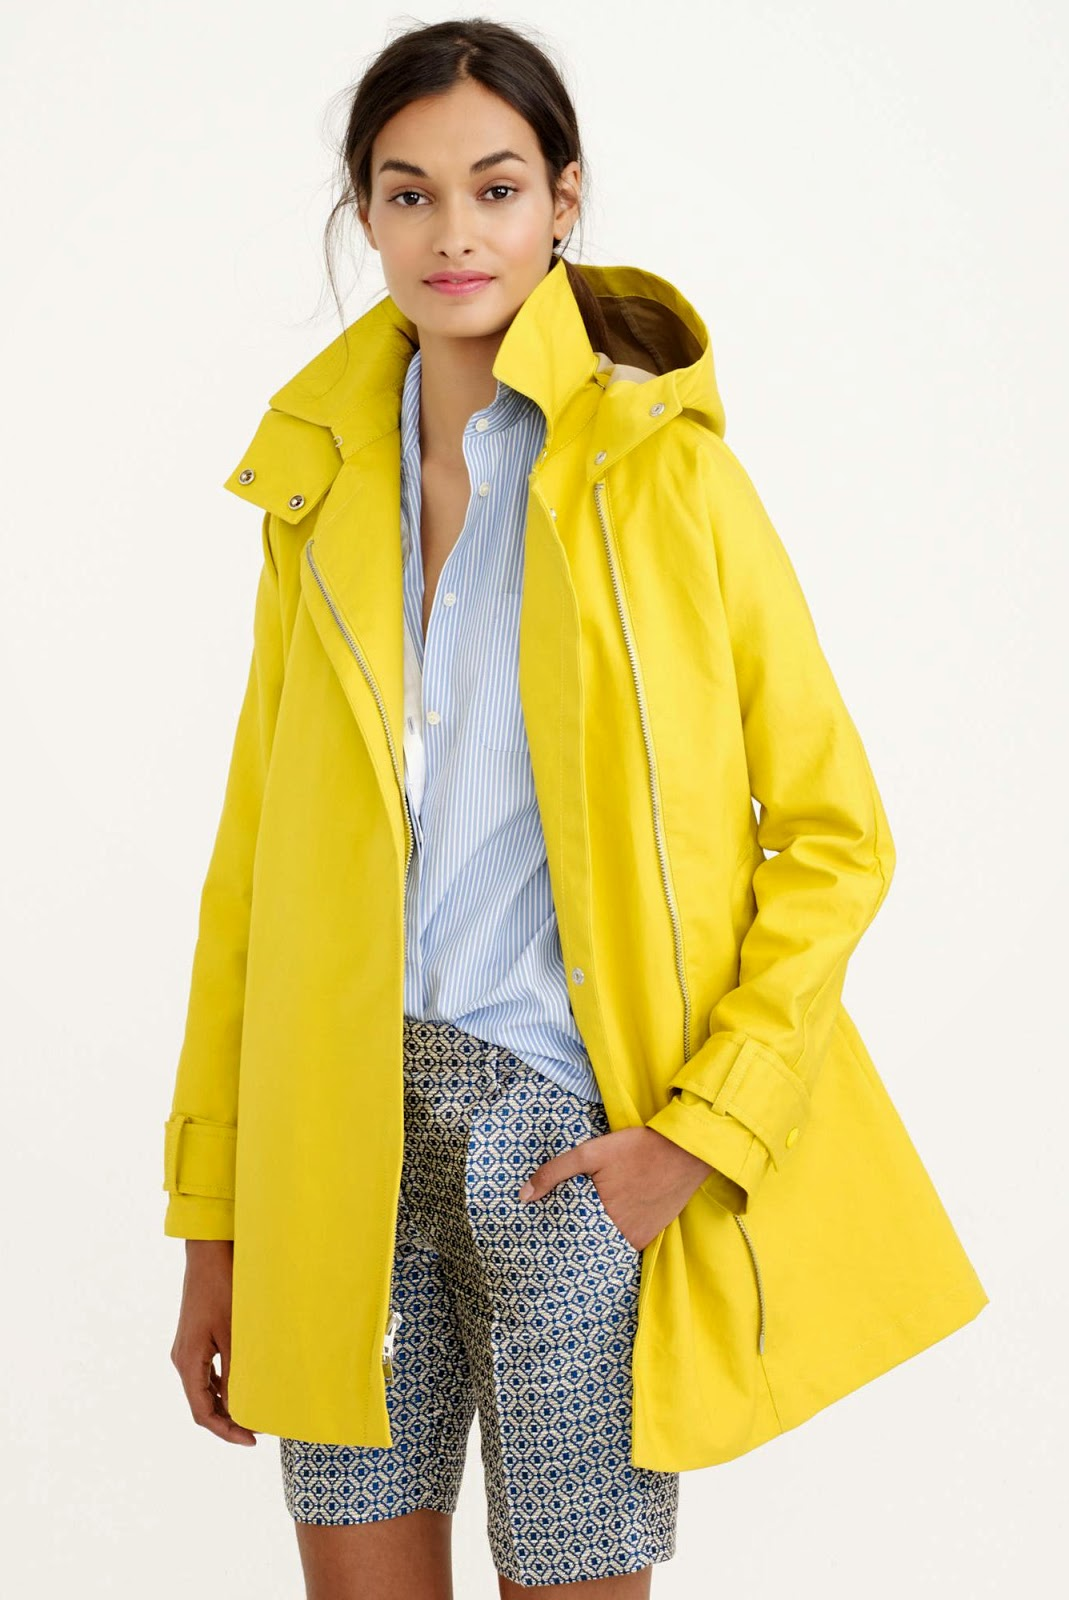 j crew swing trench yellow spring coat